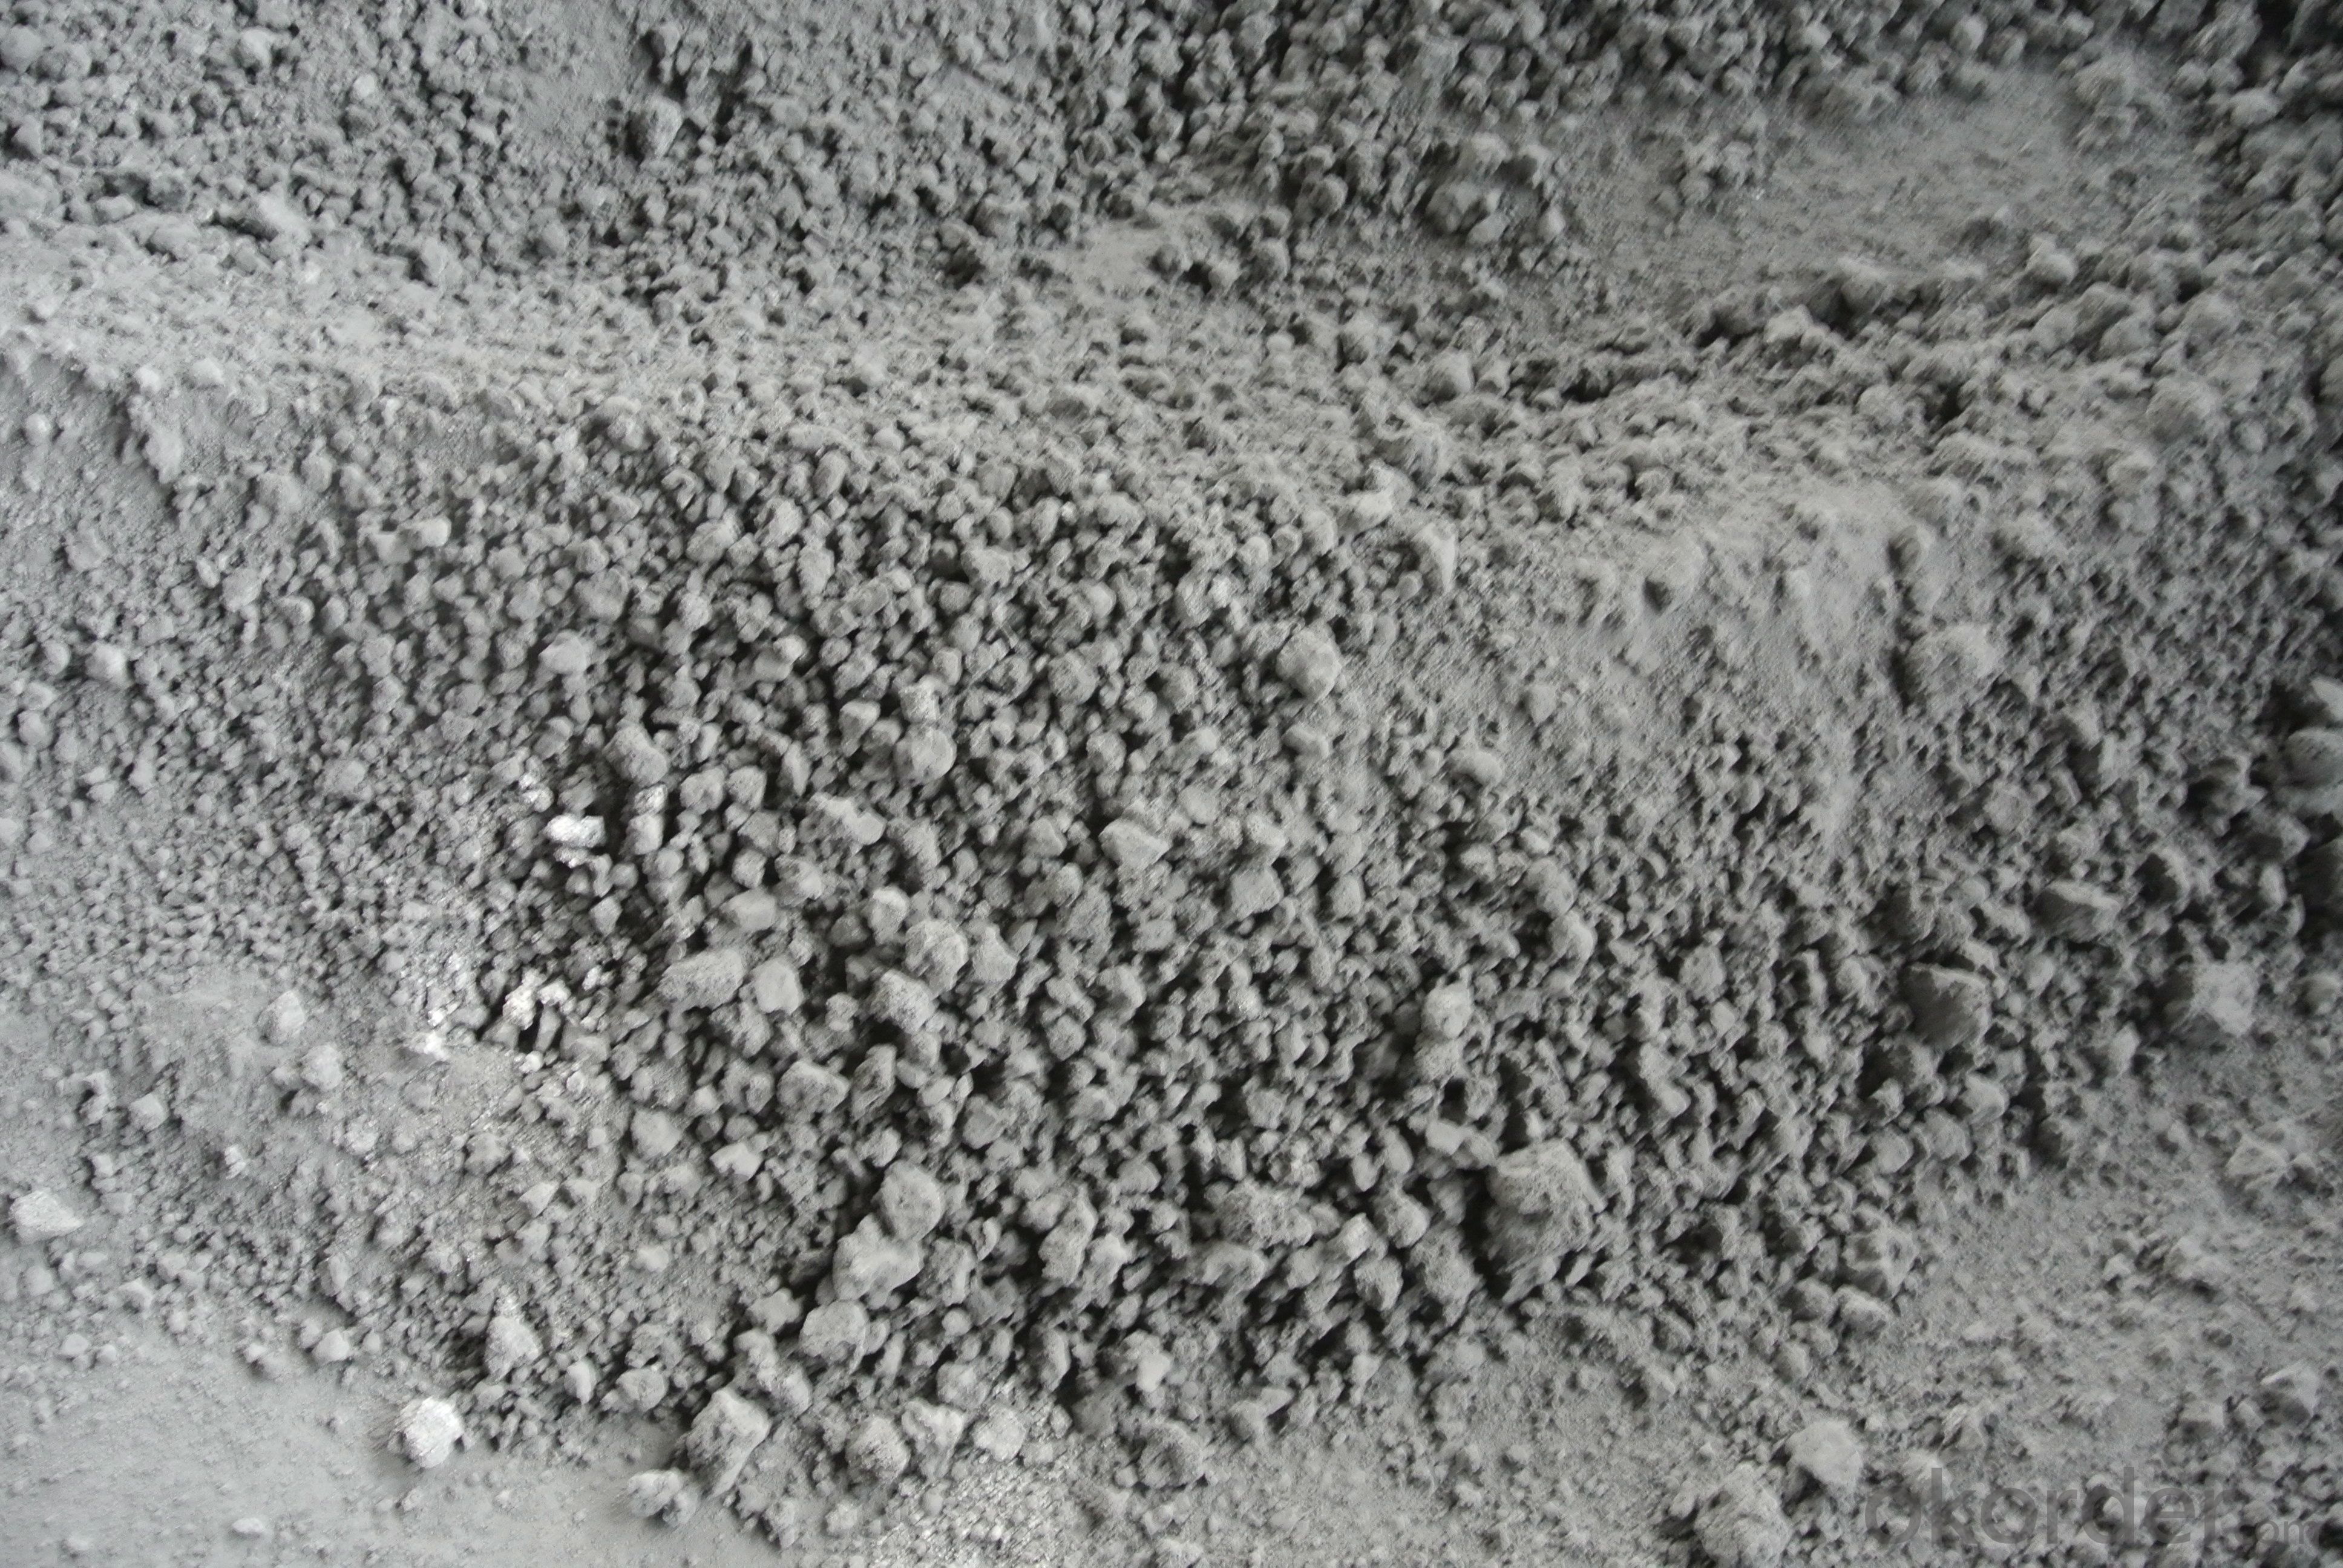 Raw Material-Carbon - Calcined Petroleum Coke